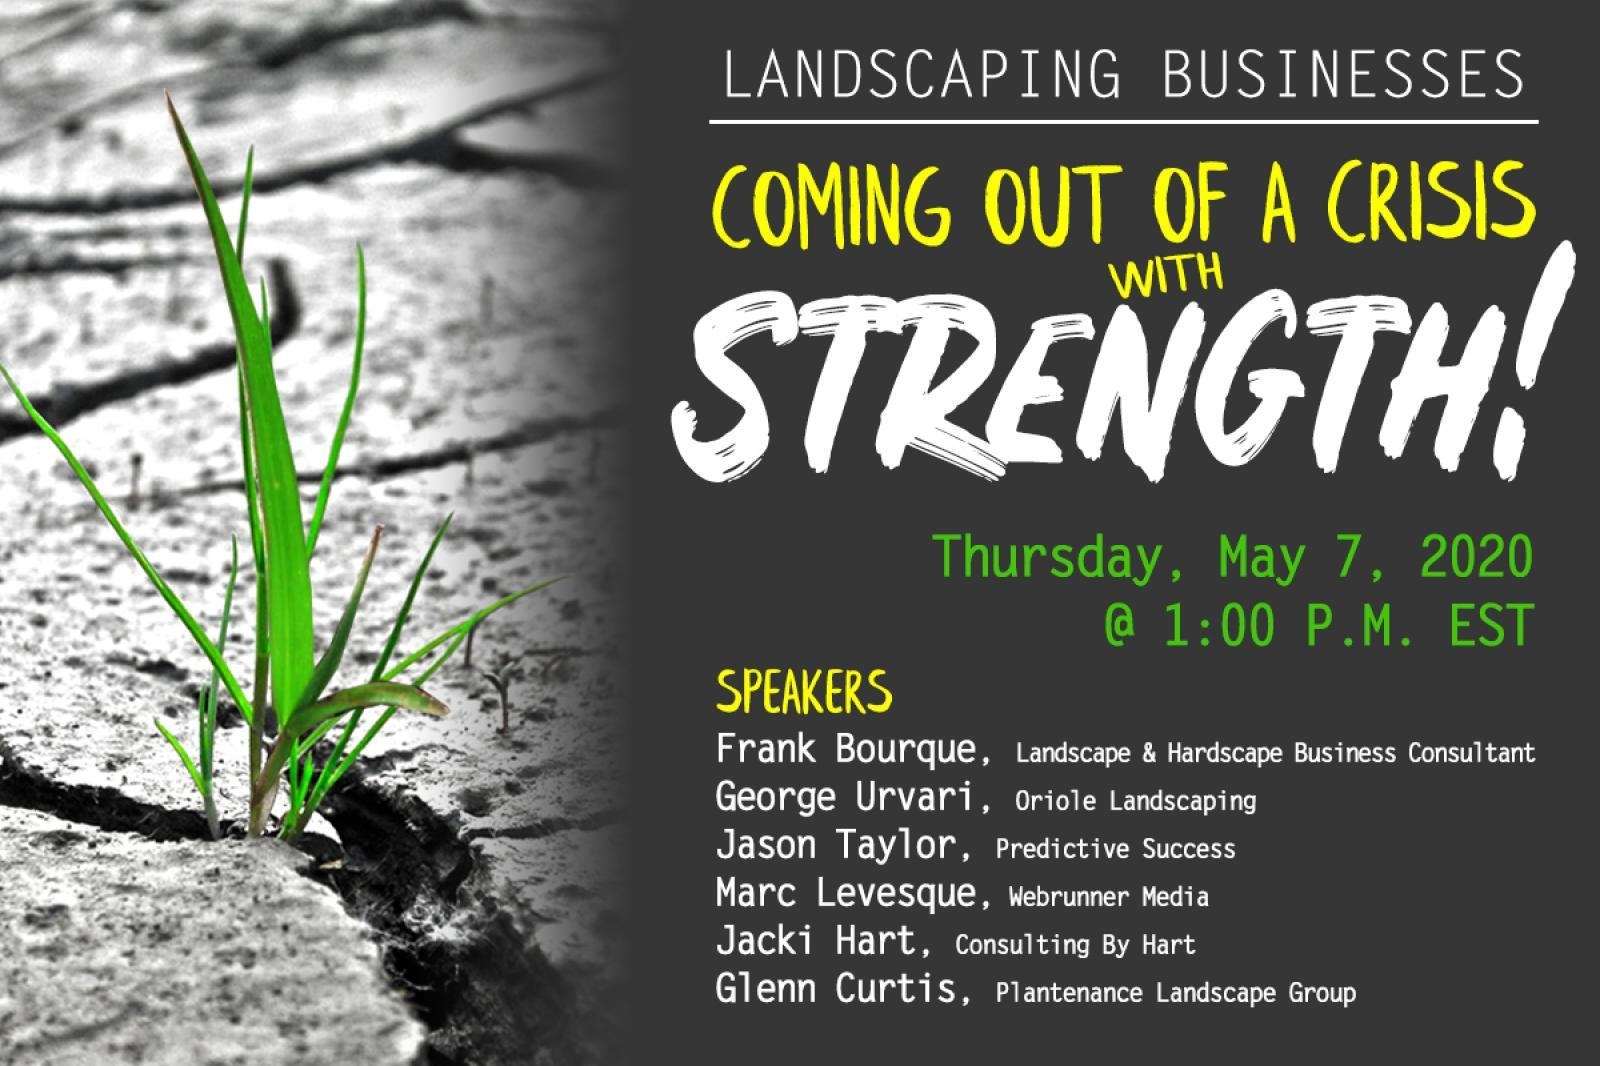 Landscaping Businesses Coming Out of a Crisis with Strength